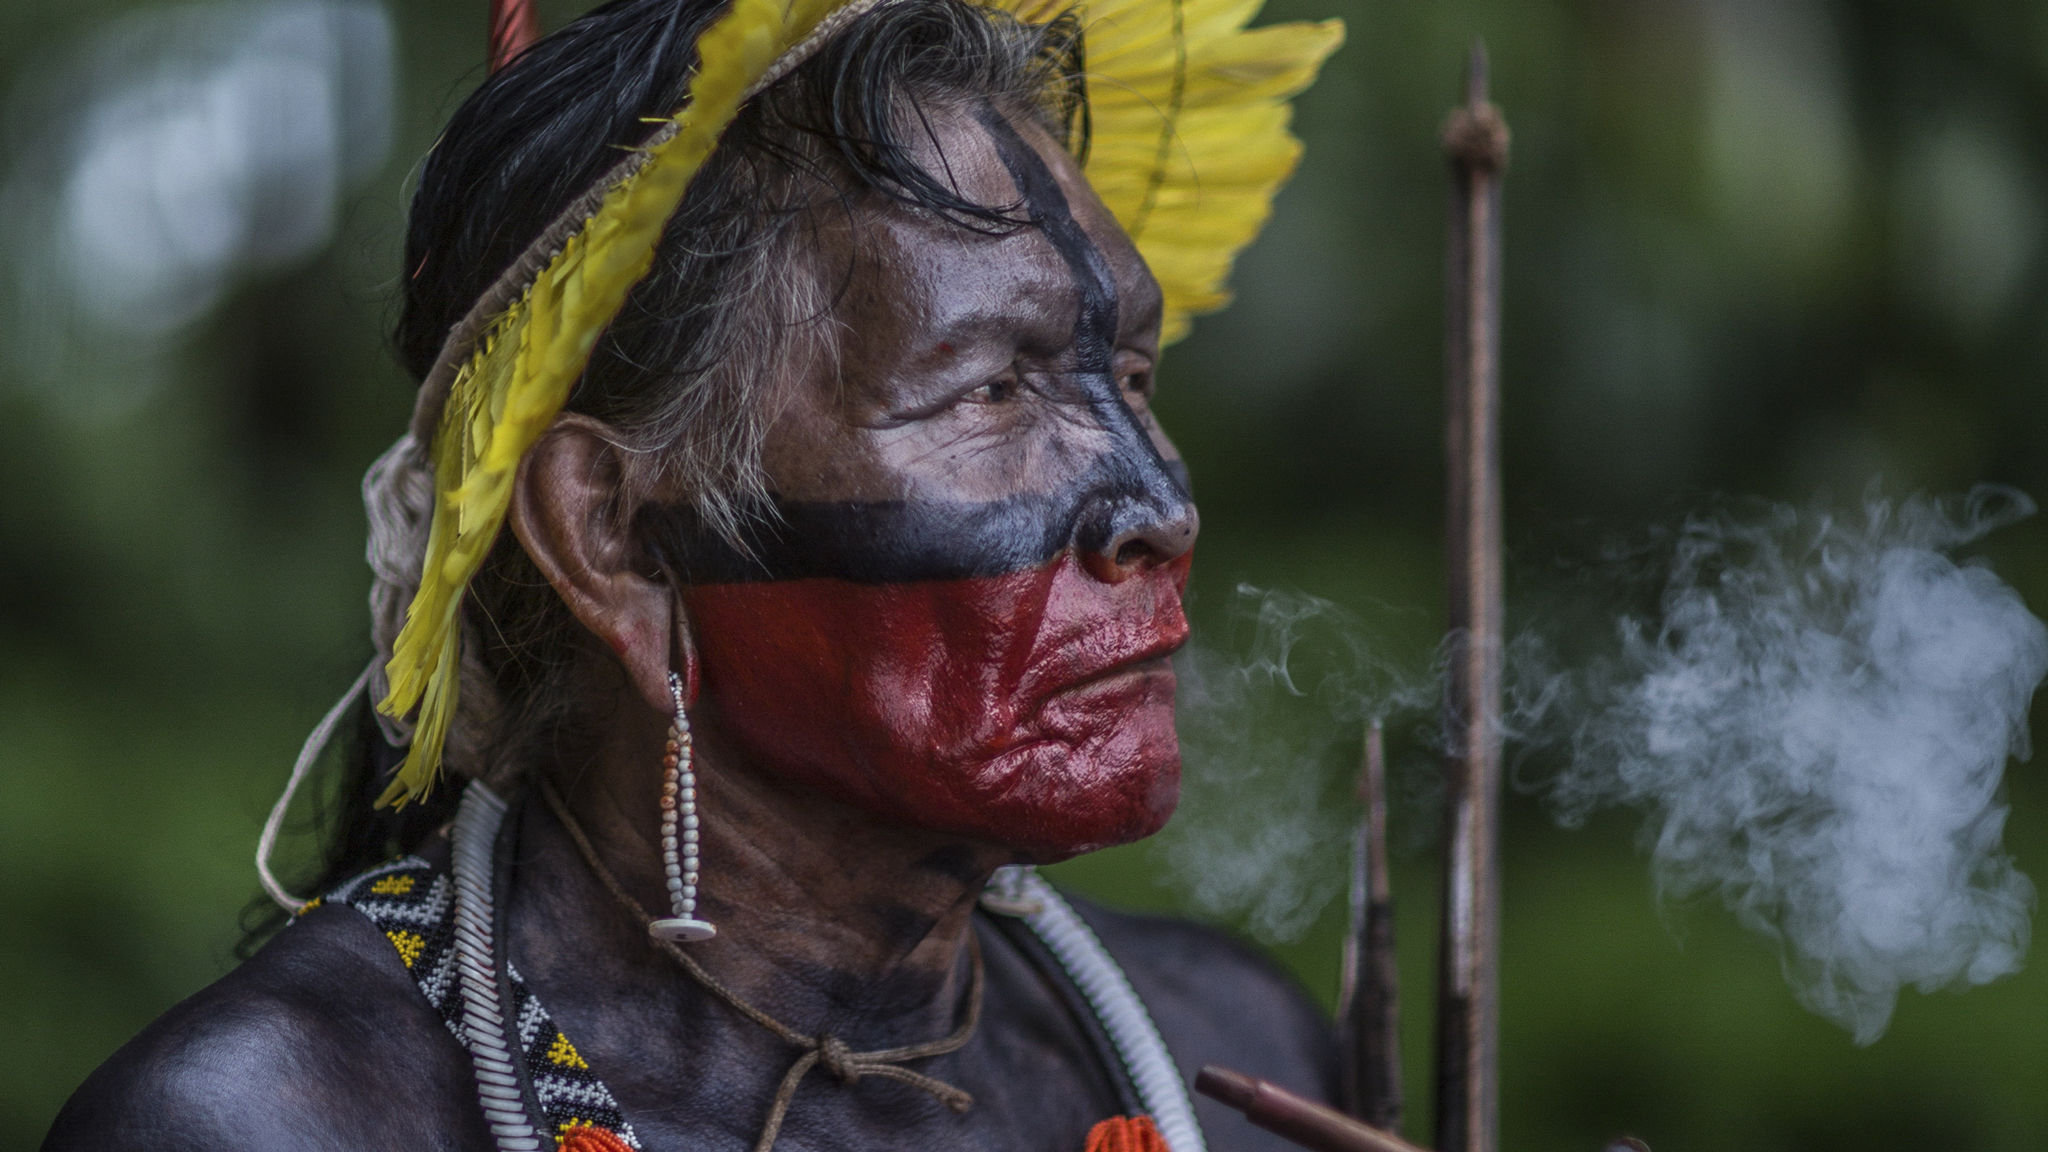 Powerful interests pose threat to Amazon's forest communities